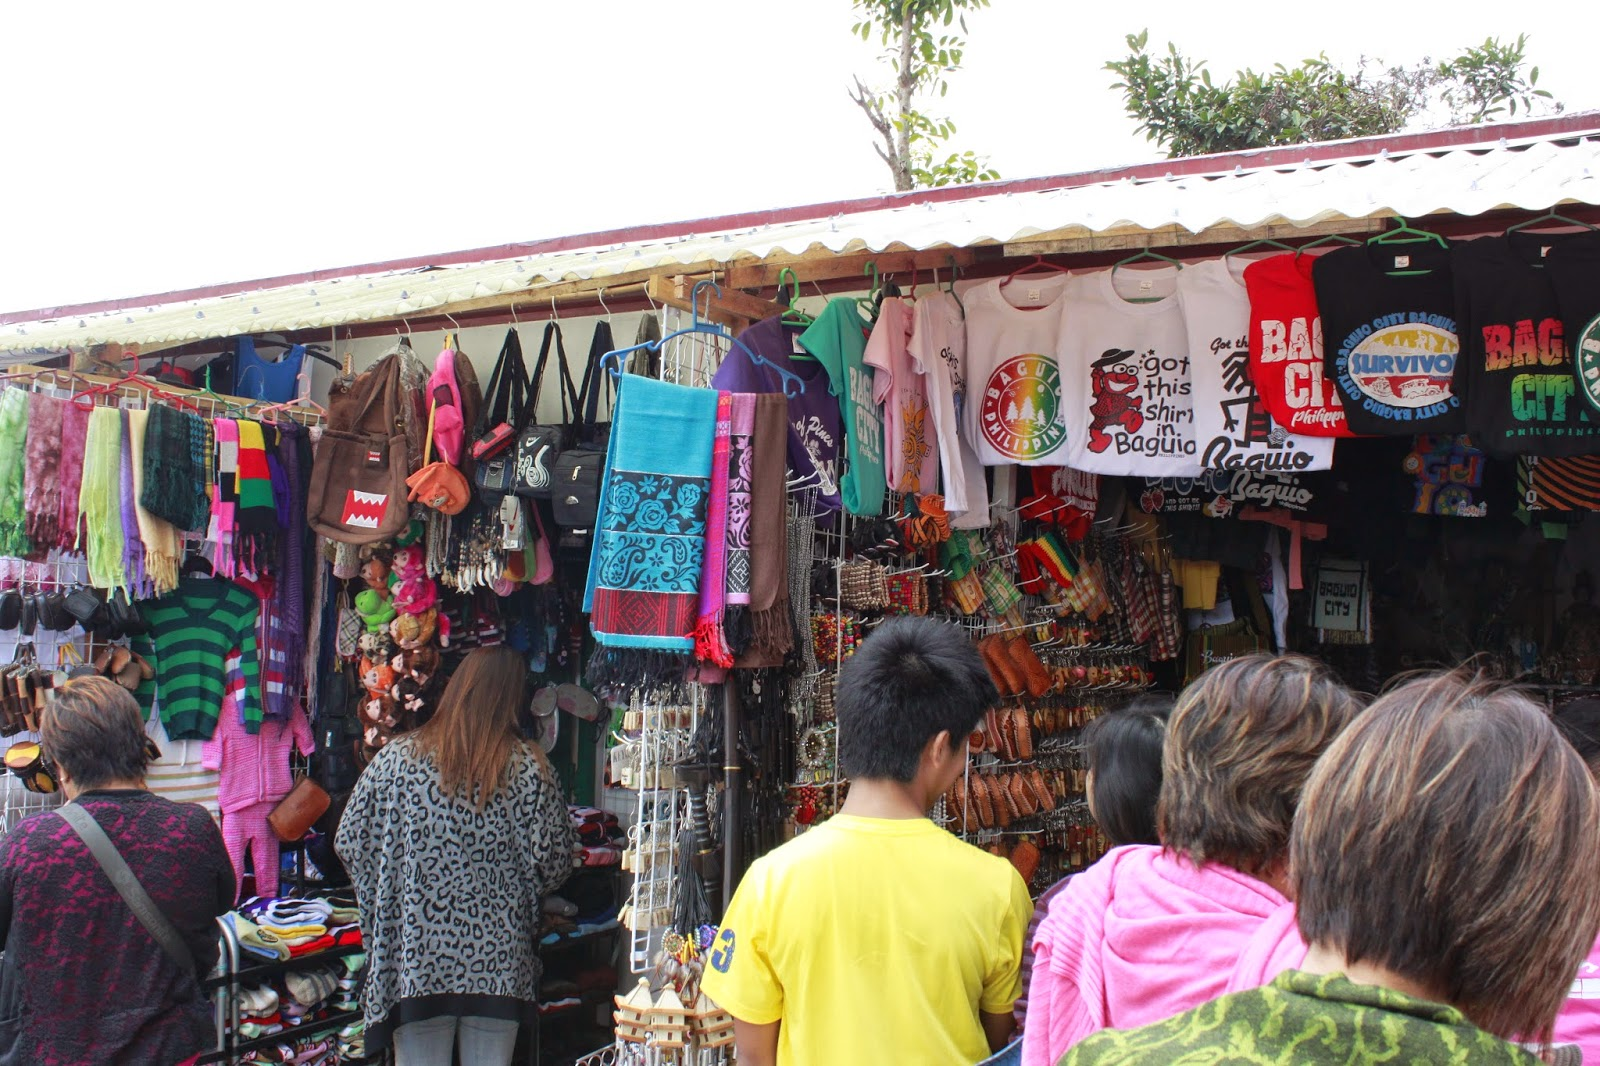 Souvenir Shops in Our Lady of Lourdes Grotto